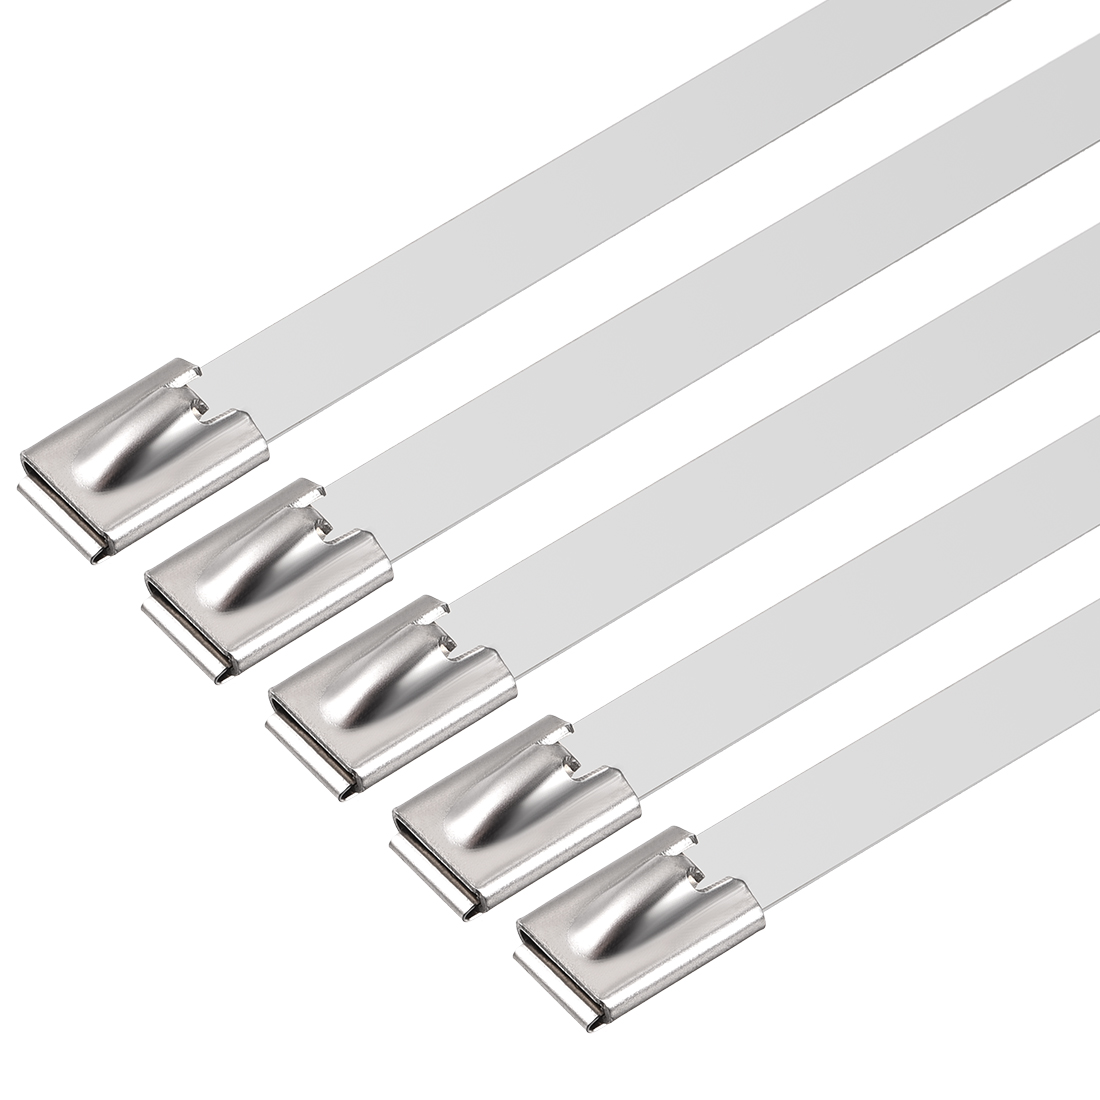 39 Inch Stainless Steel Cable Zip Ties 0.4 Inch Width Metal Exhaust Wrap 5pcs